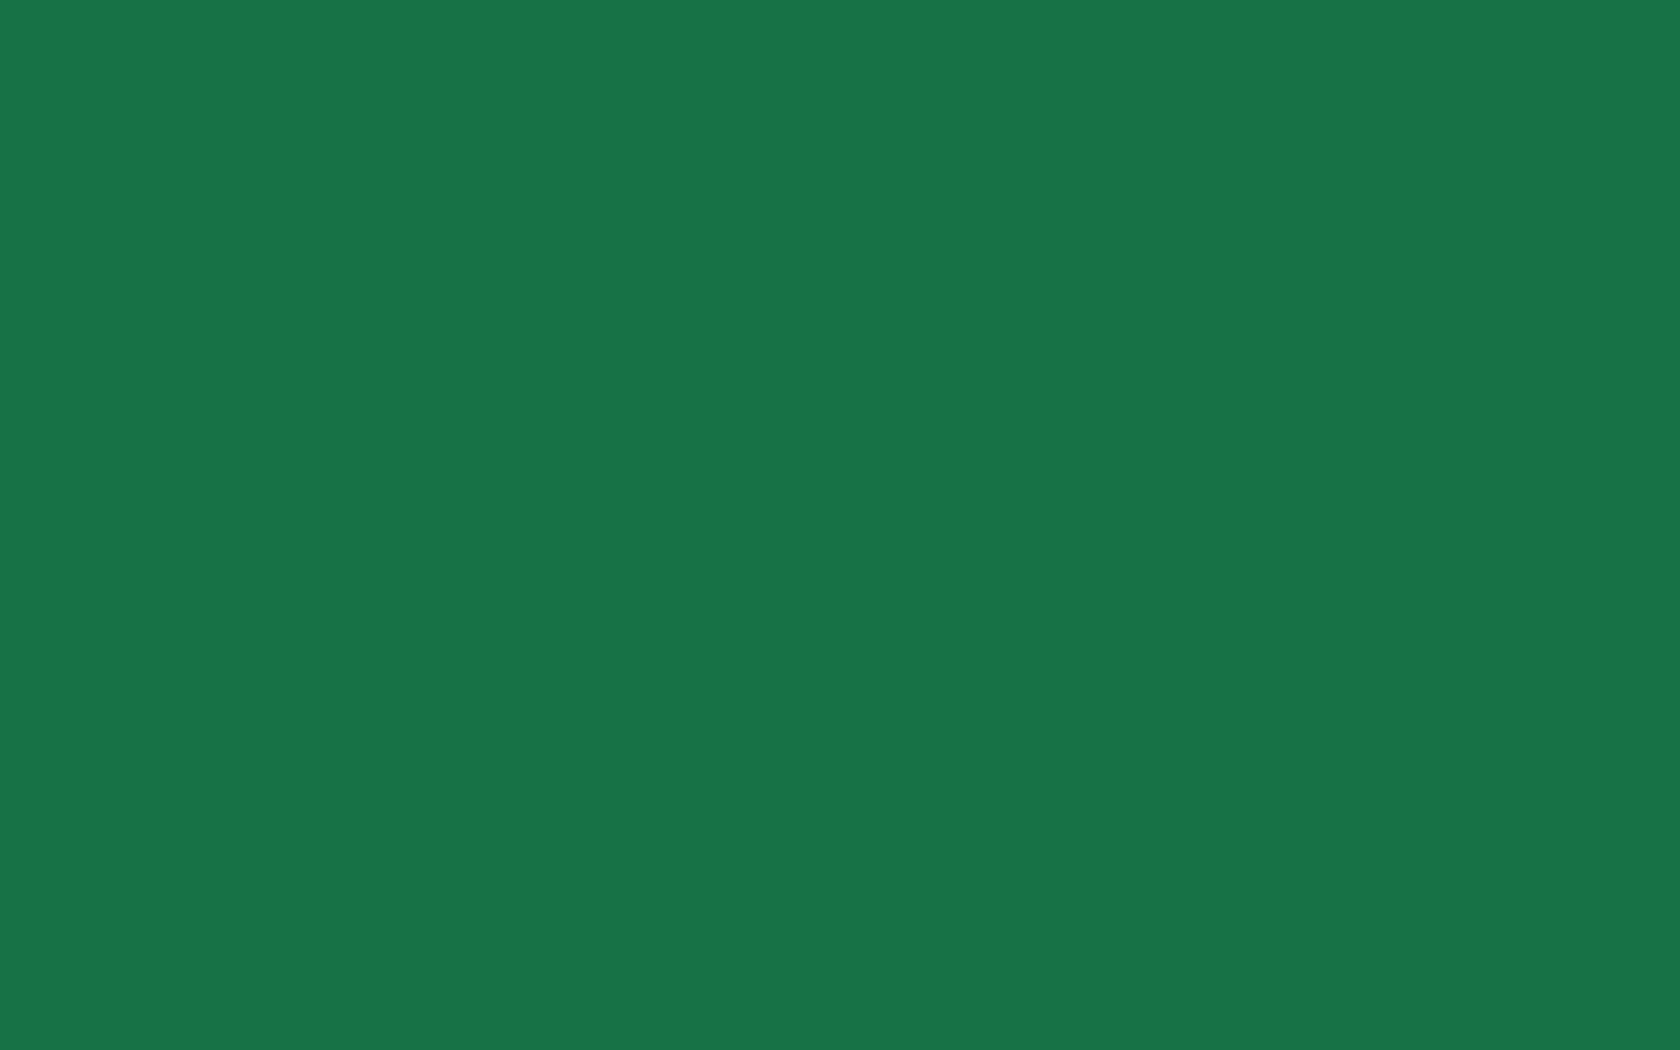 1680x1050 Dark Spring Green Solid Color Background